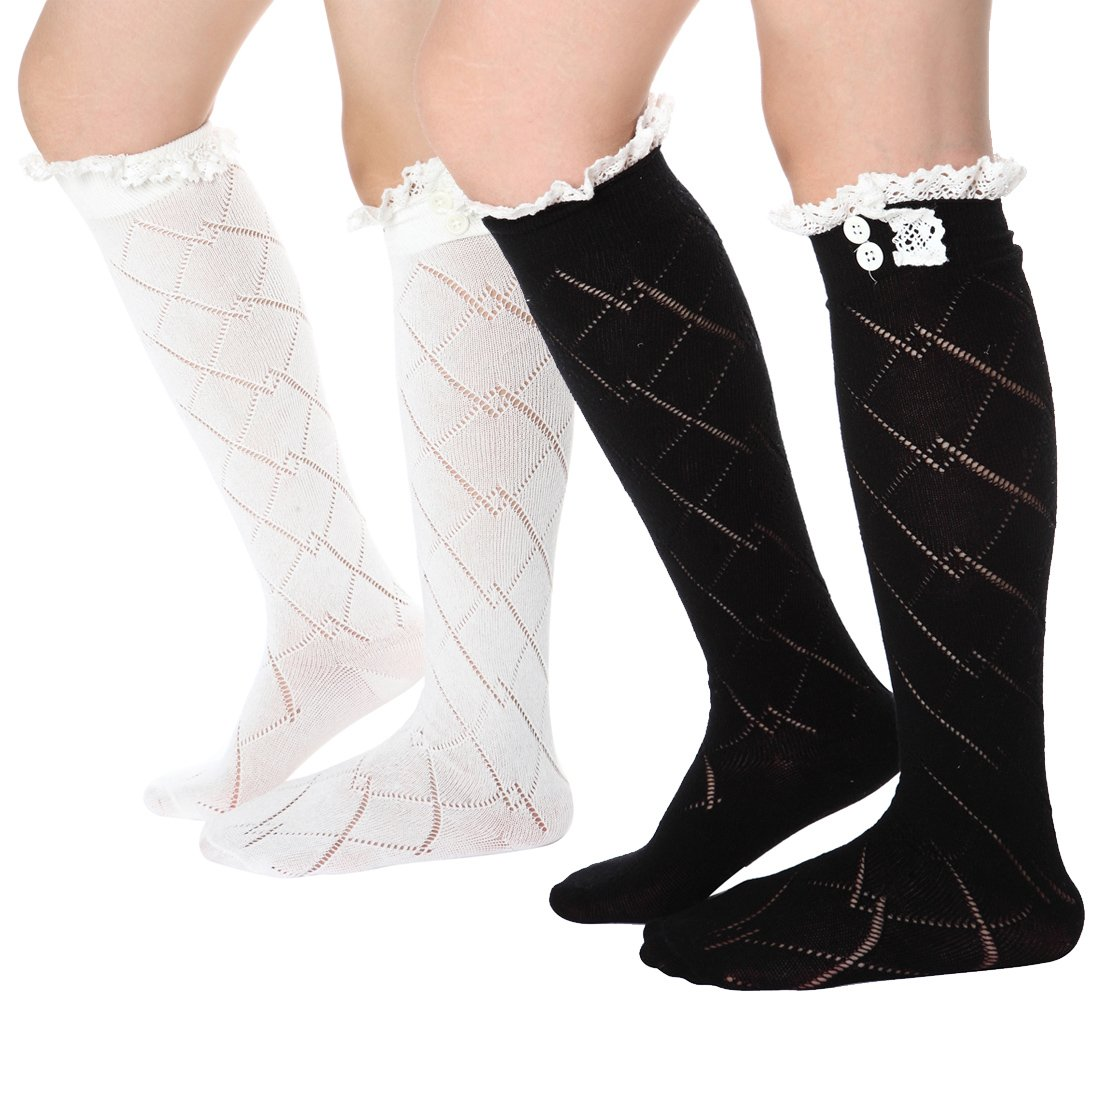 FAYBOX Women Lace Boot Socks Trim Leg Warmers Button Cuffs Toppers WHT BLK